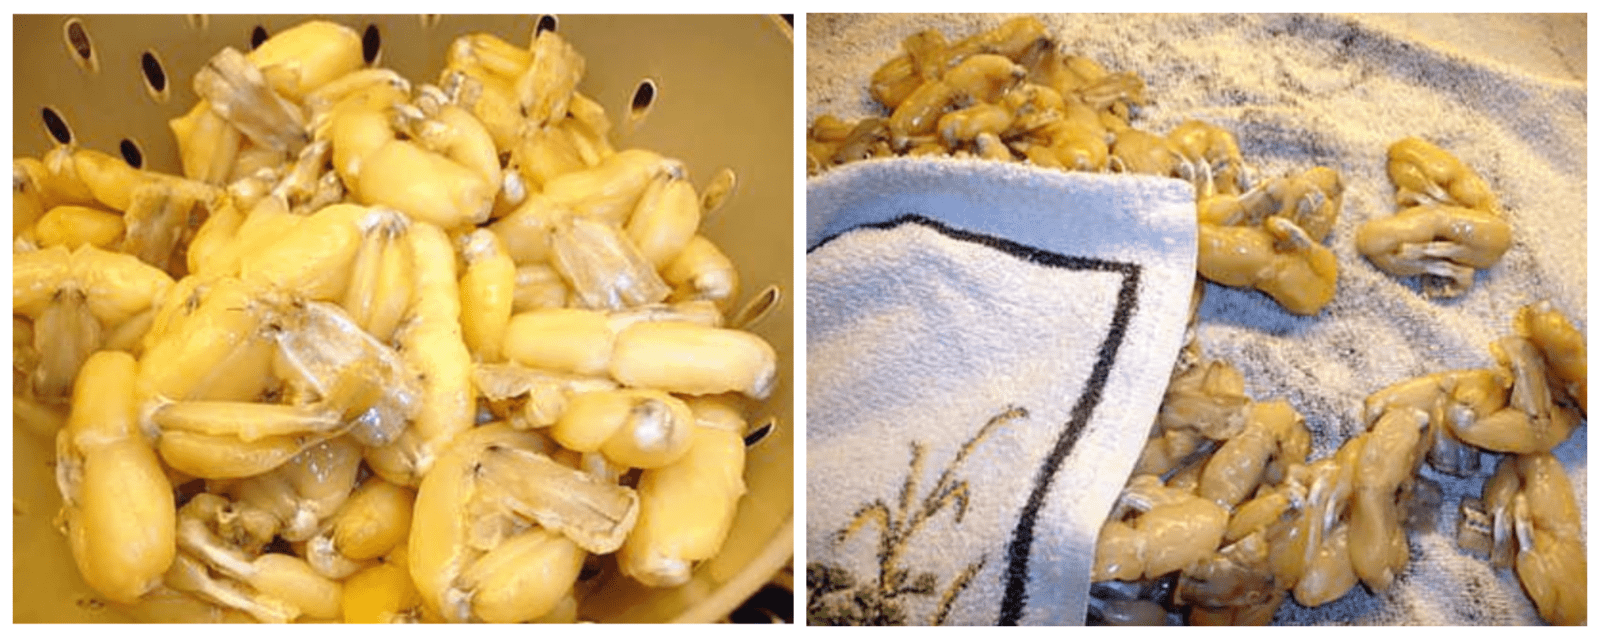 washing and preparation of the frog legs